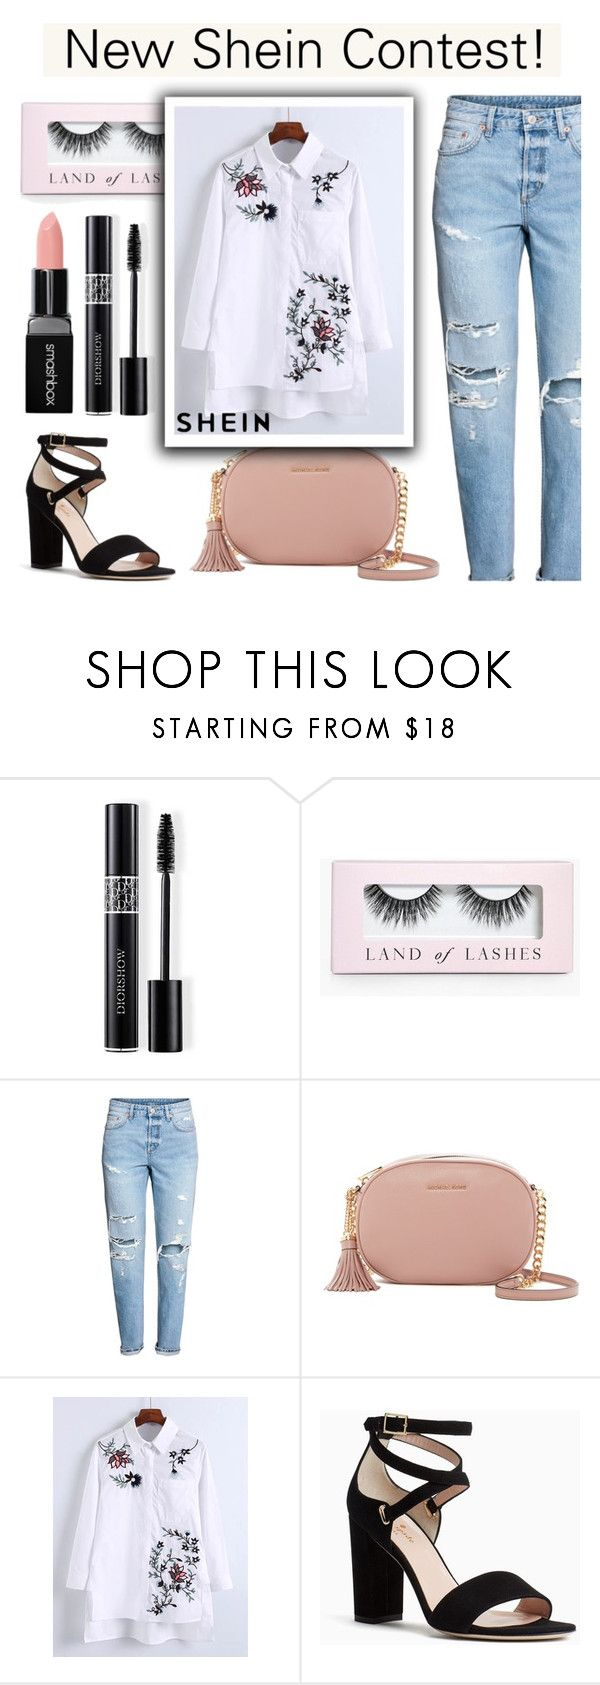 New Contest in My Group! by dora04 on Polyvore featuring Kate Spade, MICHAEL Michael Kors, Christian Dior, Boohoo and Smashbox